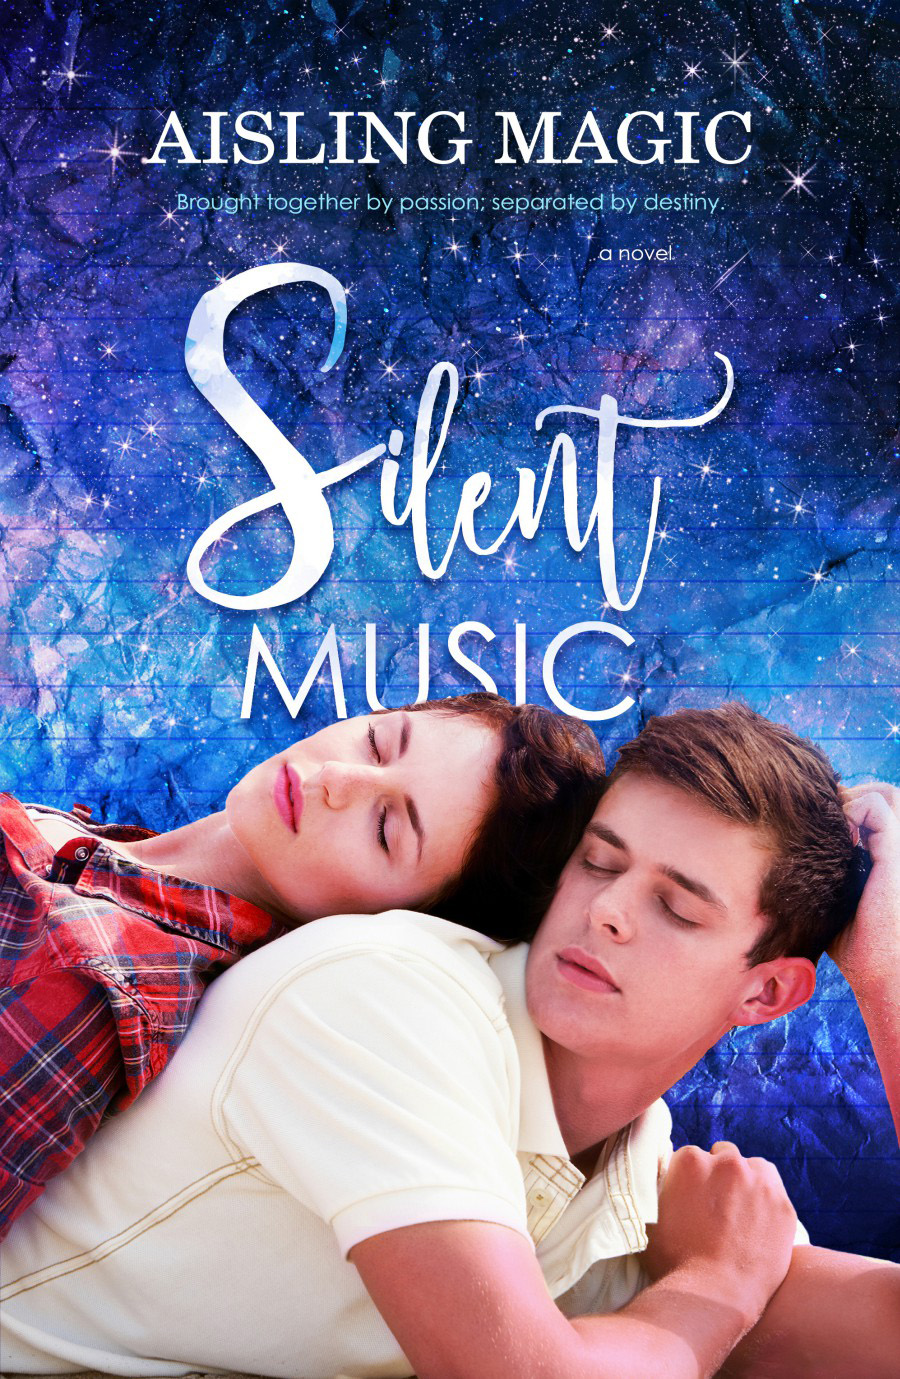 From Aisling Magic, comes Silent Music –> Cover Reveal